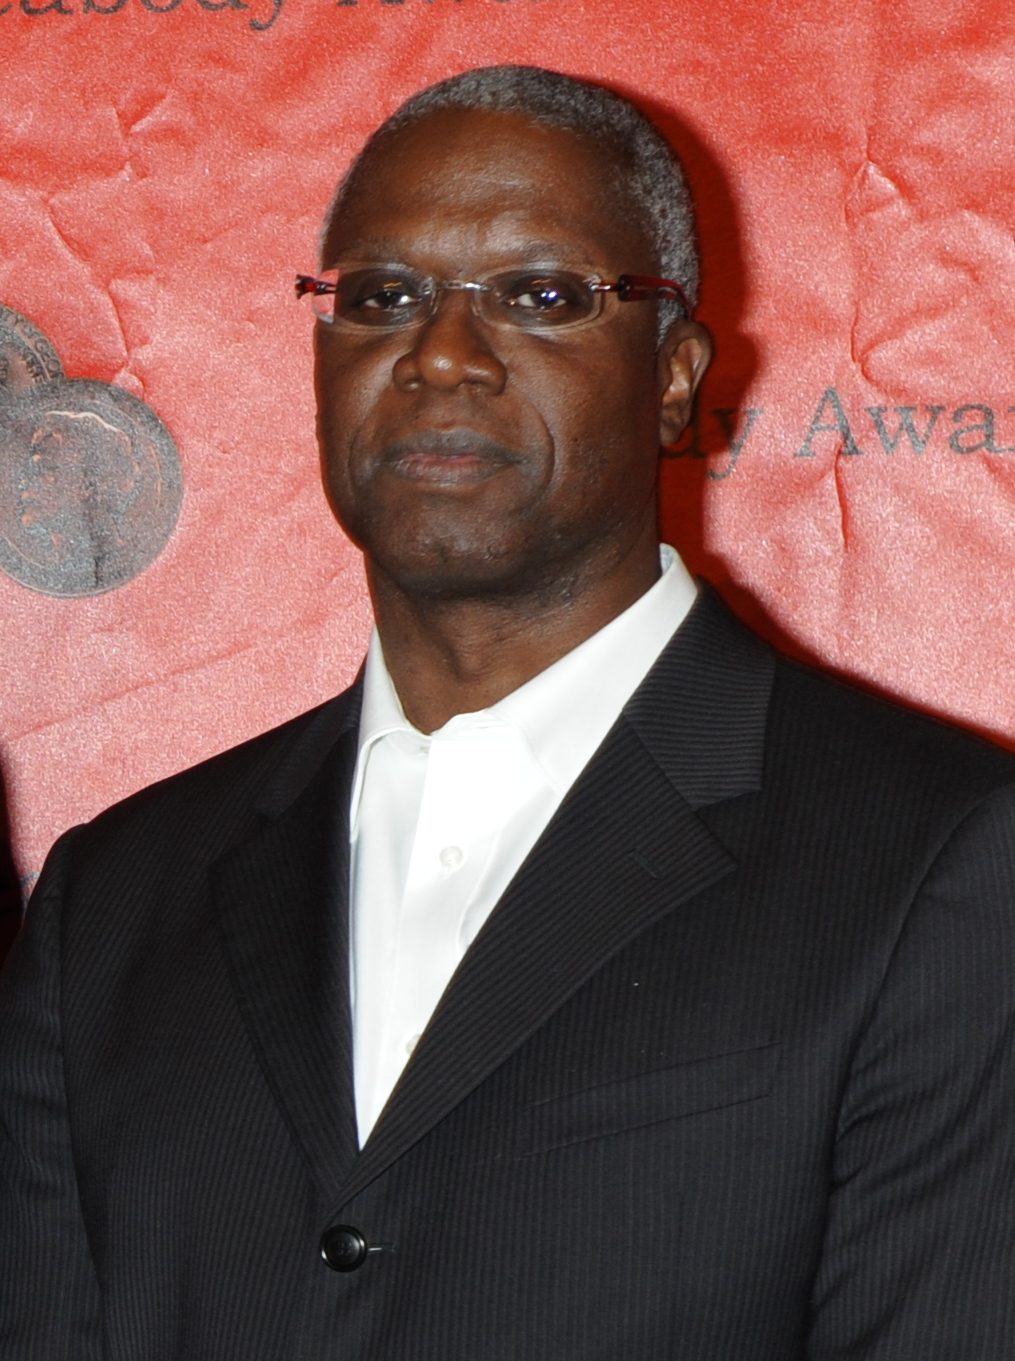 The 56-year old son of father (?) and mother(?) Andre Braugher in 2018 photo. Andre Braugher earned a 0.1 million dollar salary - leaving the net worth at 8 million in 2018